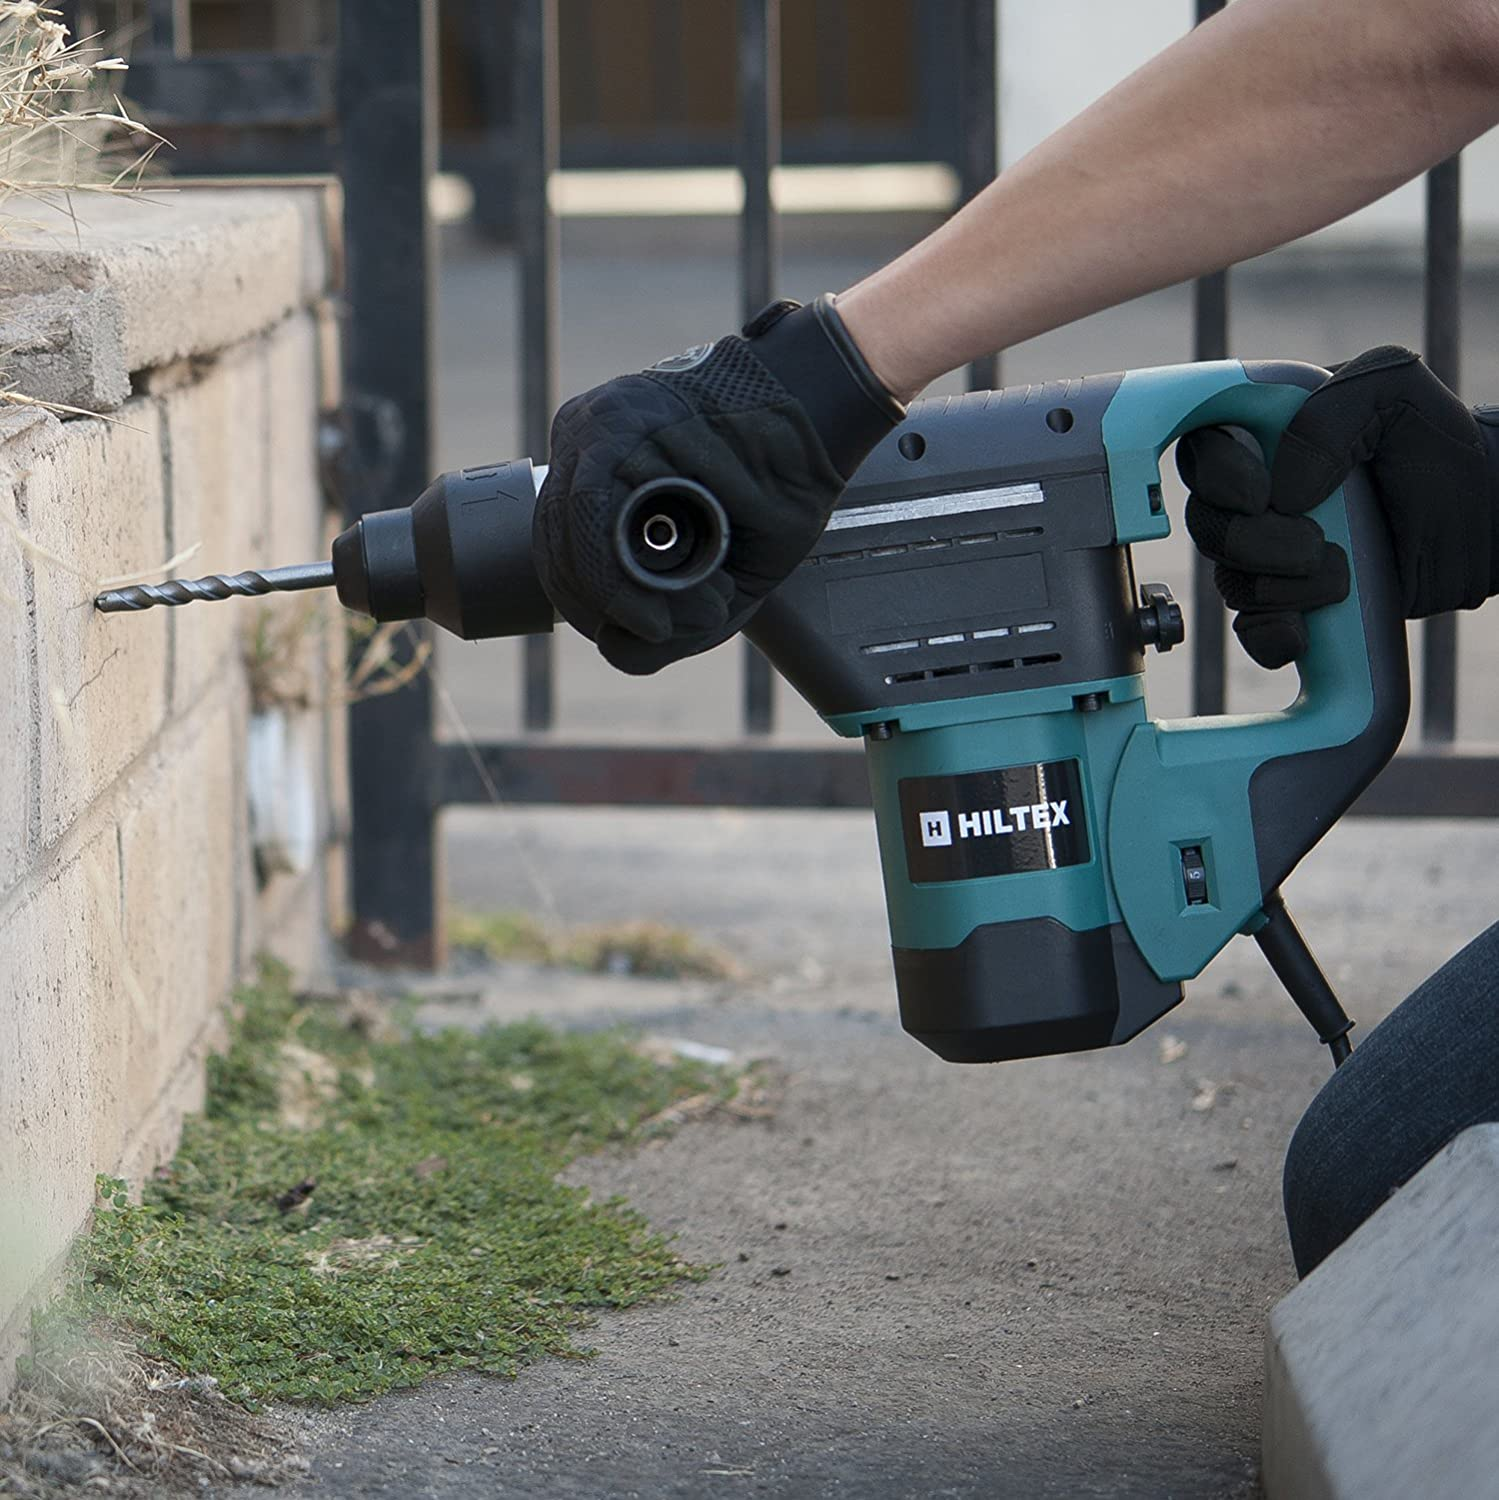 Hiltex 10513 1.5 SDS Rotary Hammer Drill Review